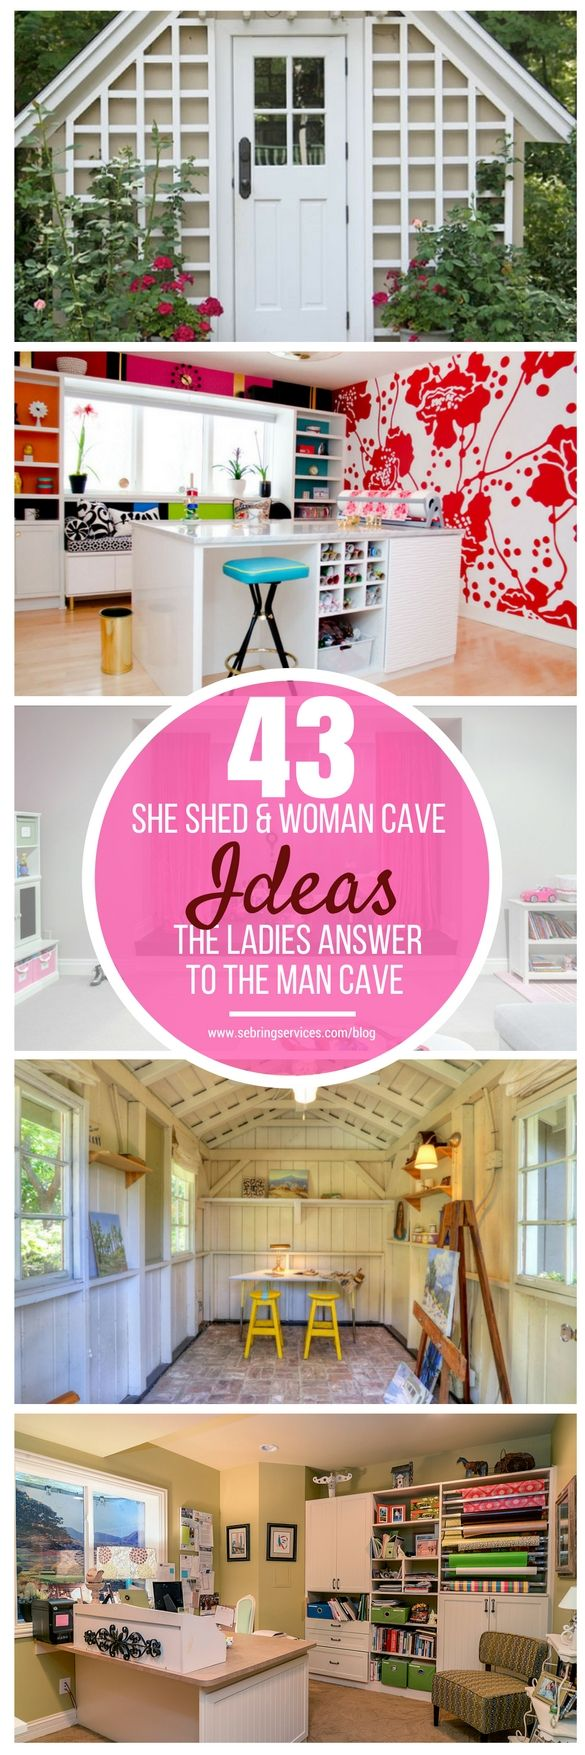 Best 25 woman cave ideas on pinterest girl cave lady cave and extra spare room ideas - Man caves chick sheds mutual needs ...